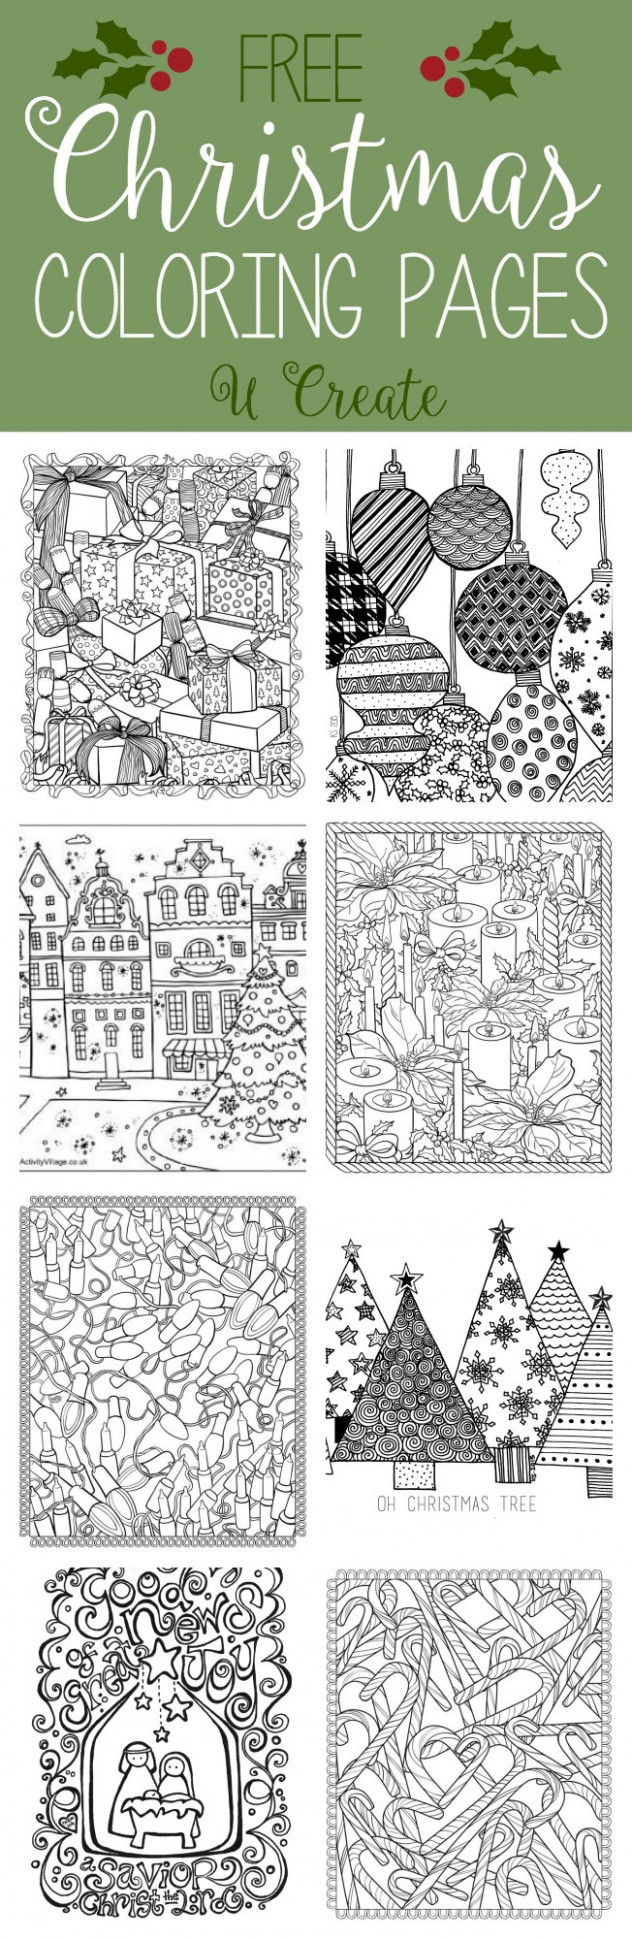 Free Christmas Adult Coloring Pages - U Create - Christmas Coloring Pages For Adults Free Printable